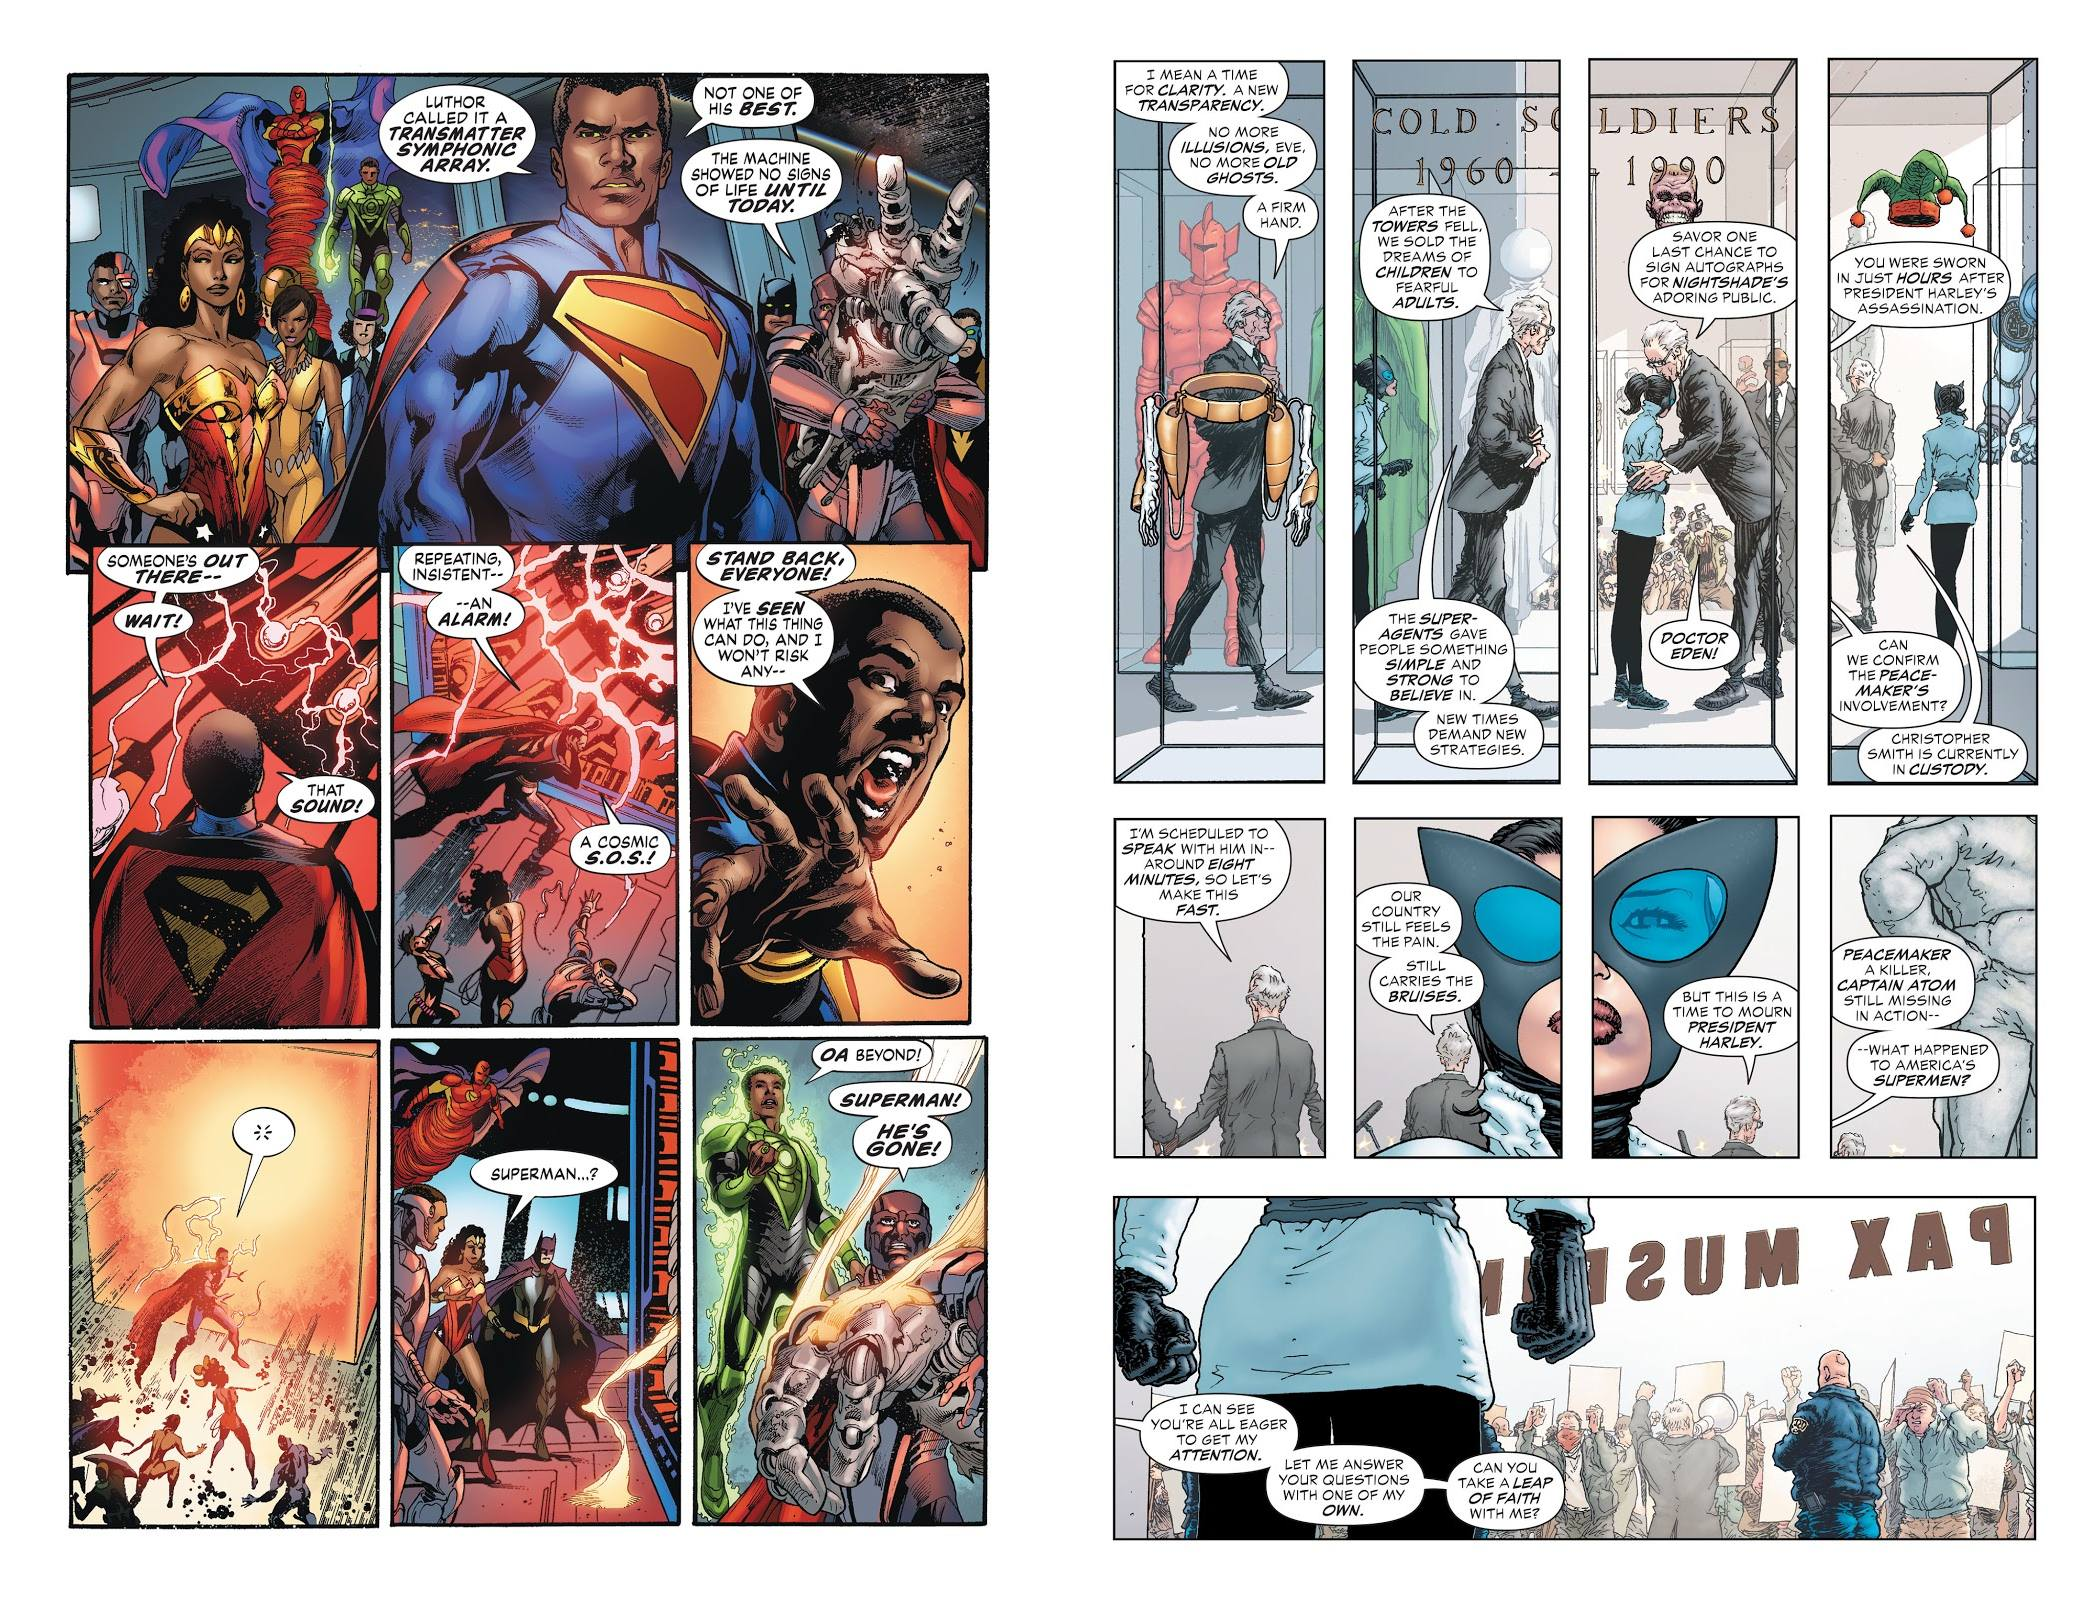 The Multiversity graphic novel review